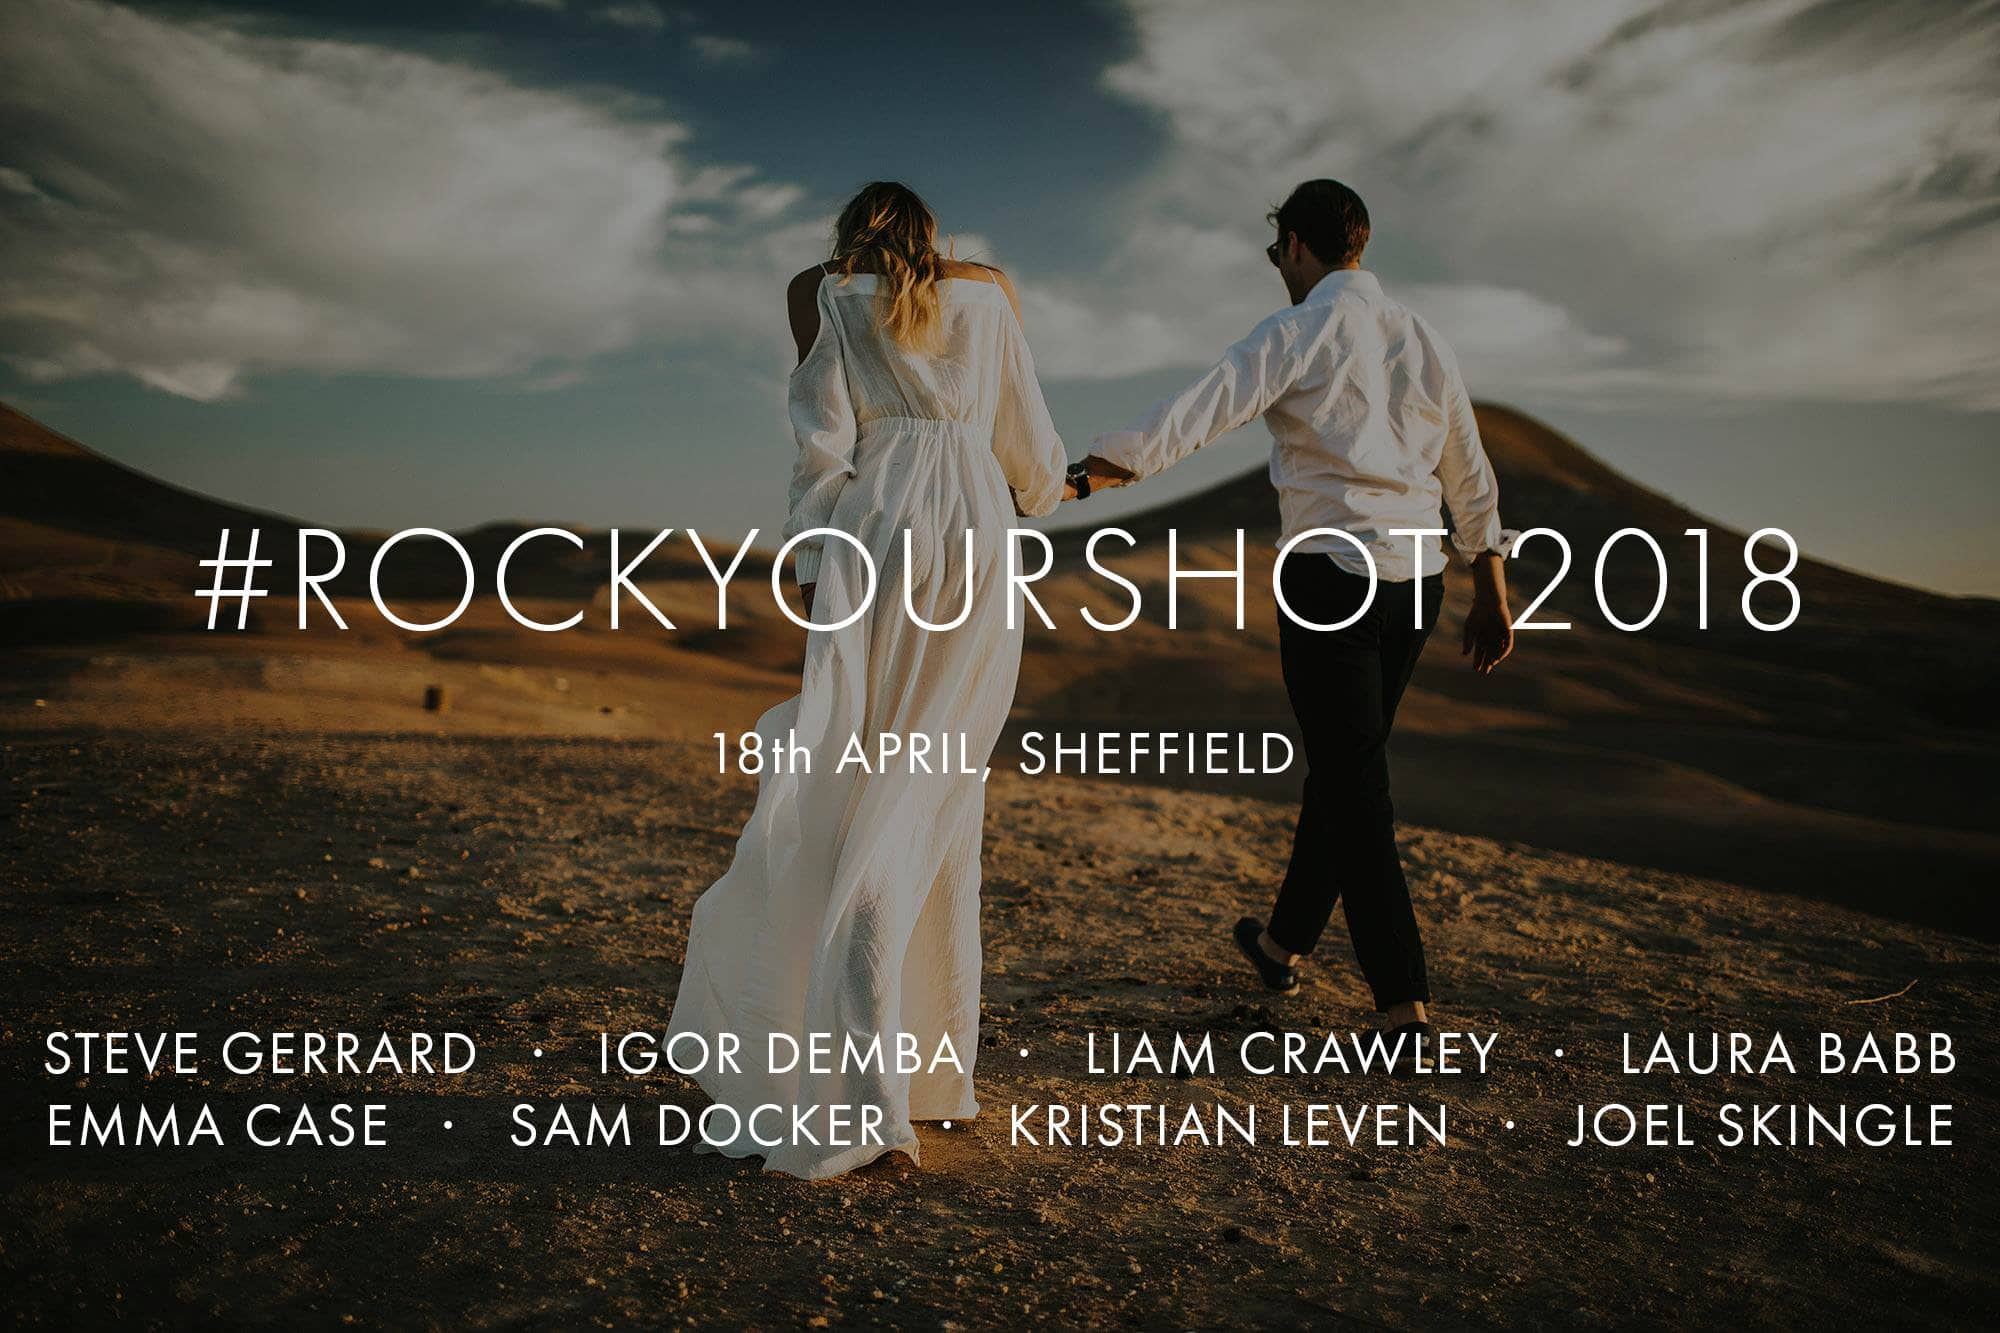 Poster of Rock Your Shot 2018 wedding photography conference with list of speakers